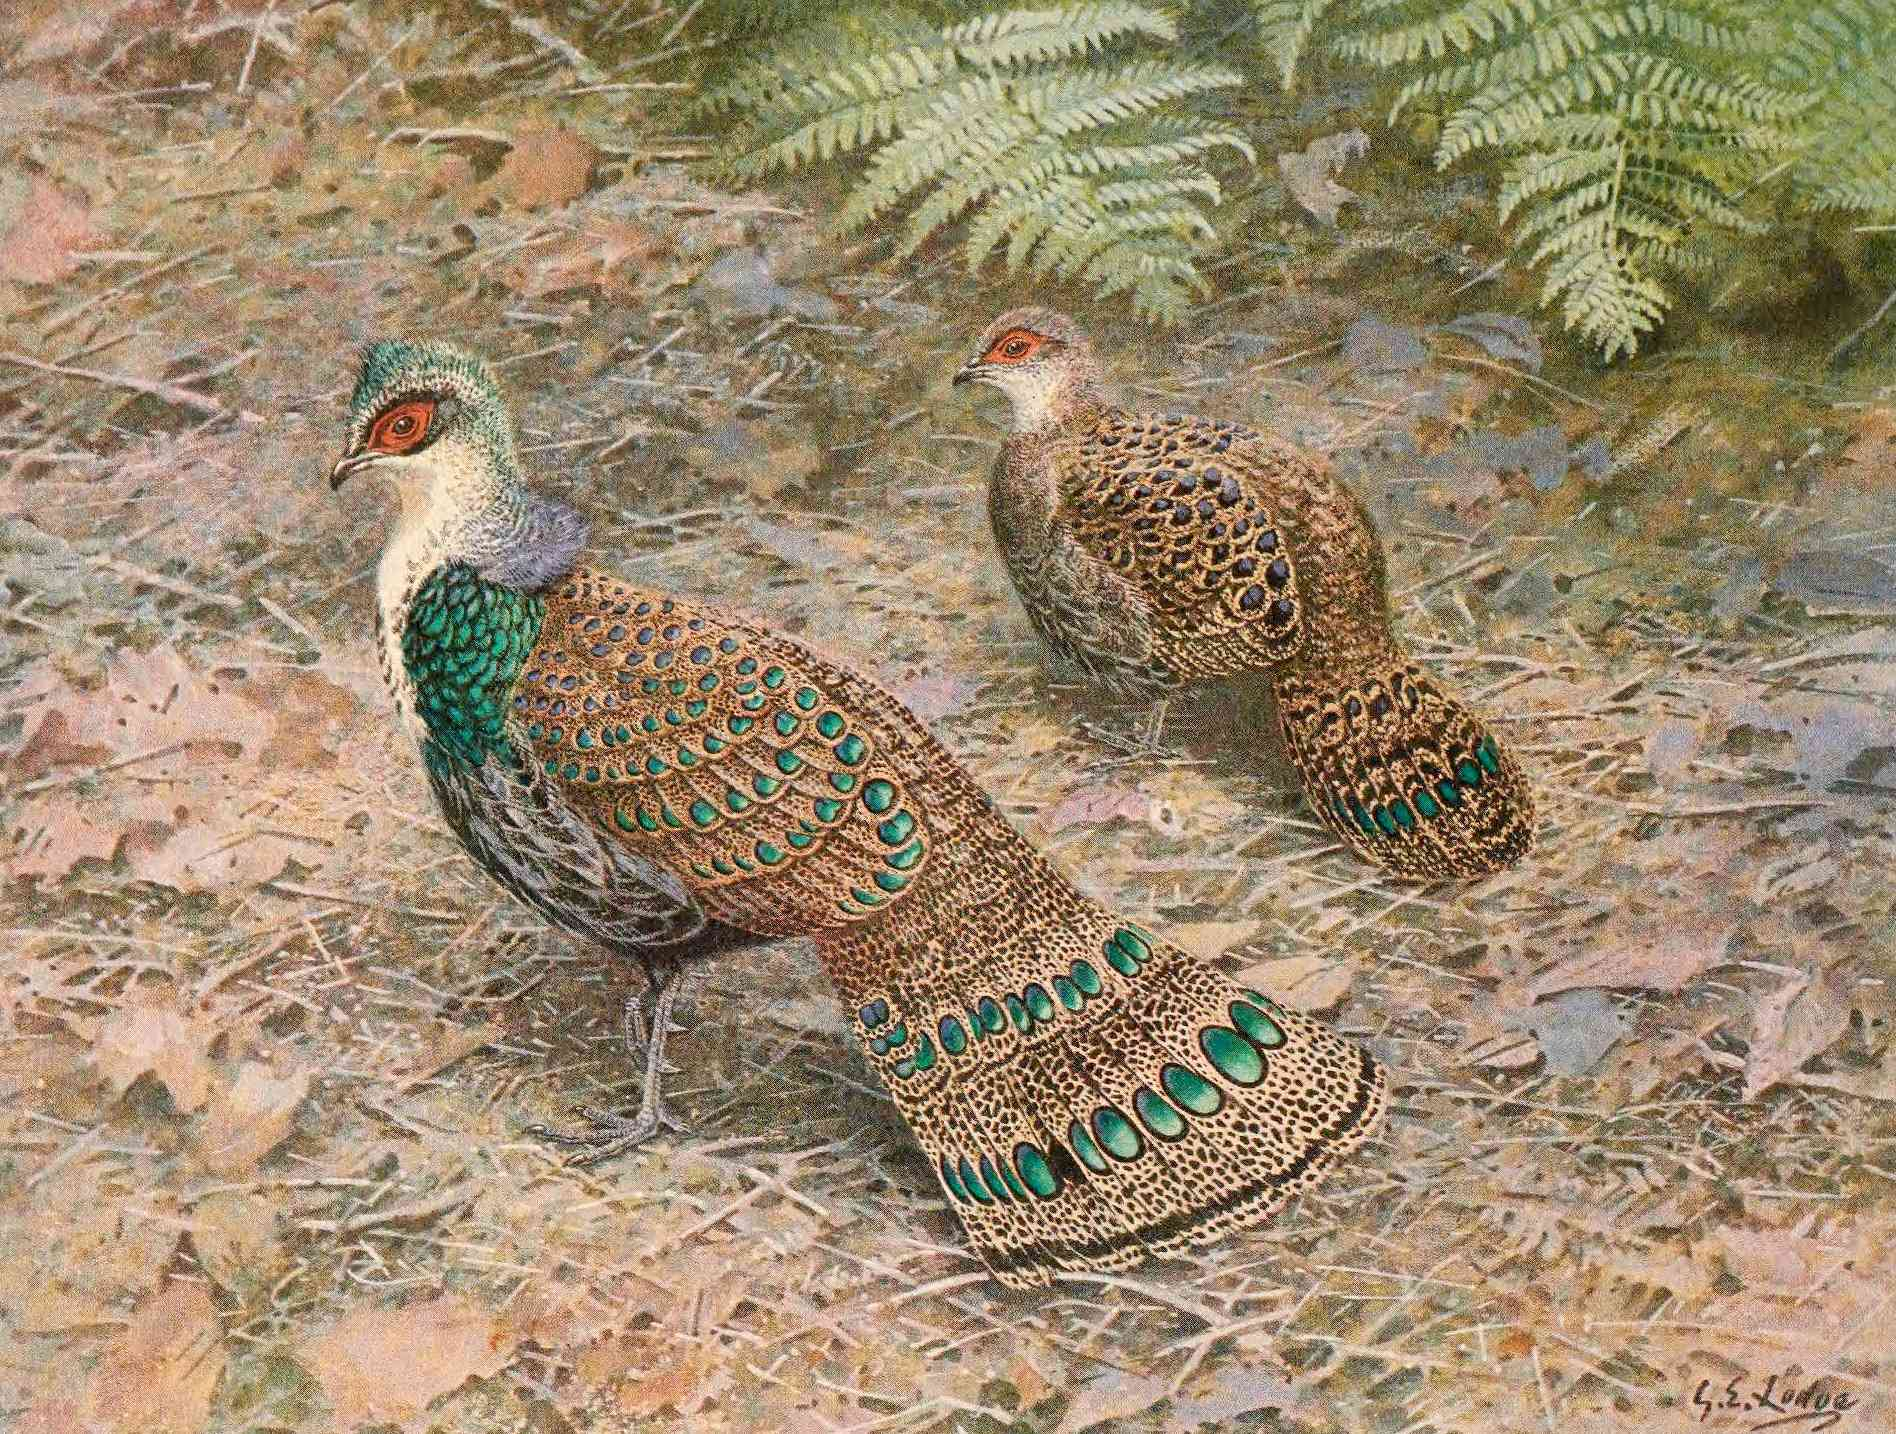 A monograph of two Bornean peacock-pheasants, one male, with vivid green coloring, and one female, with more subtle brown coloration.